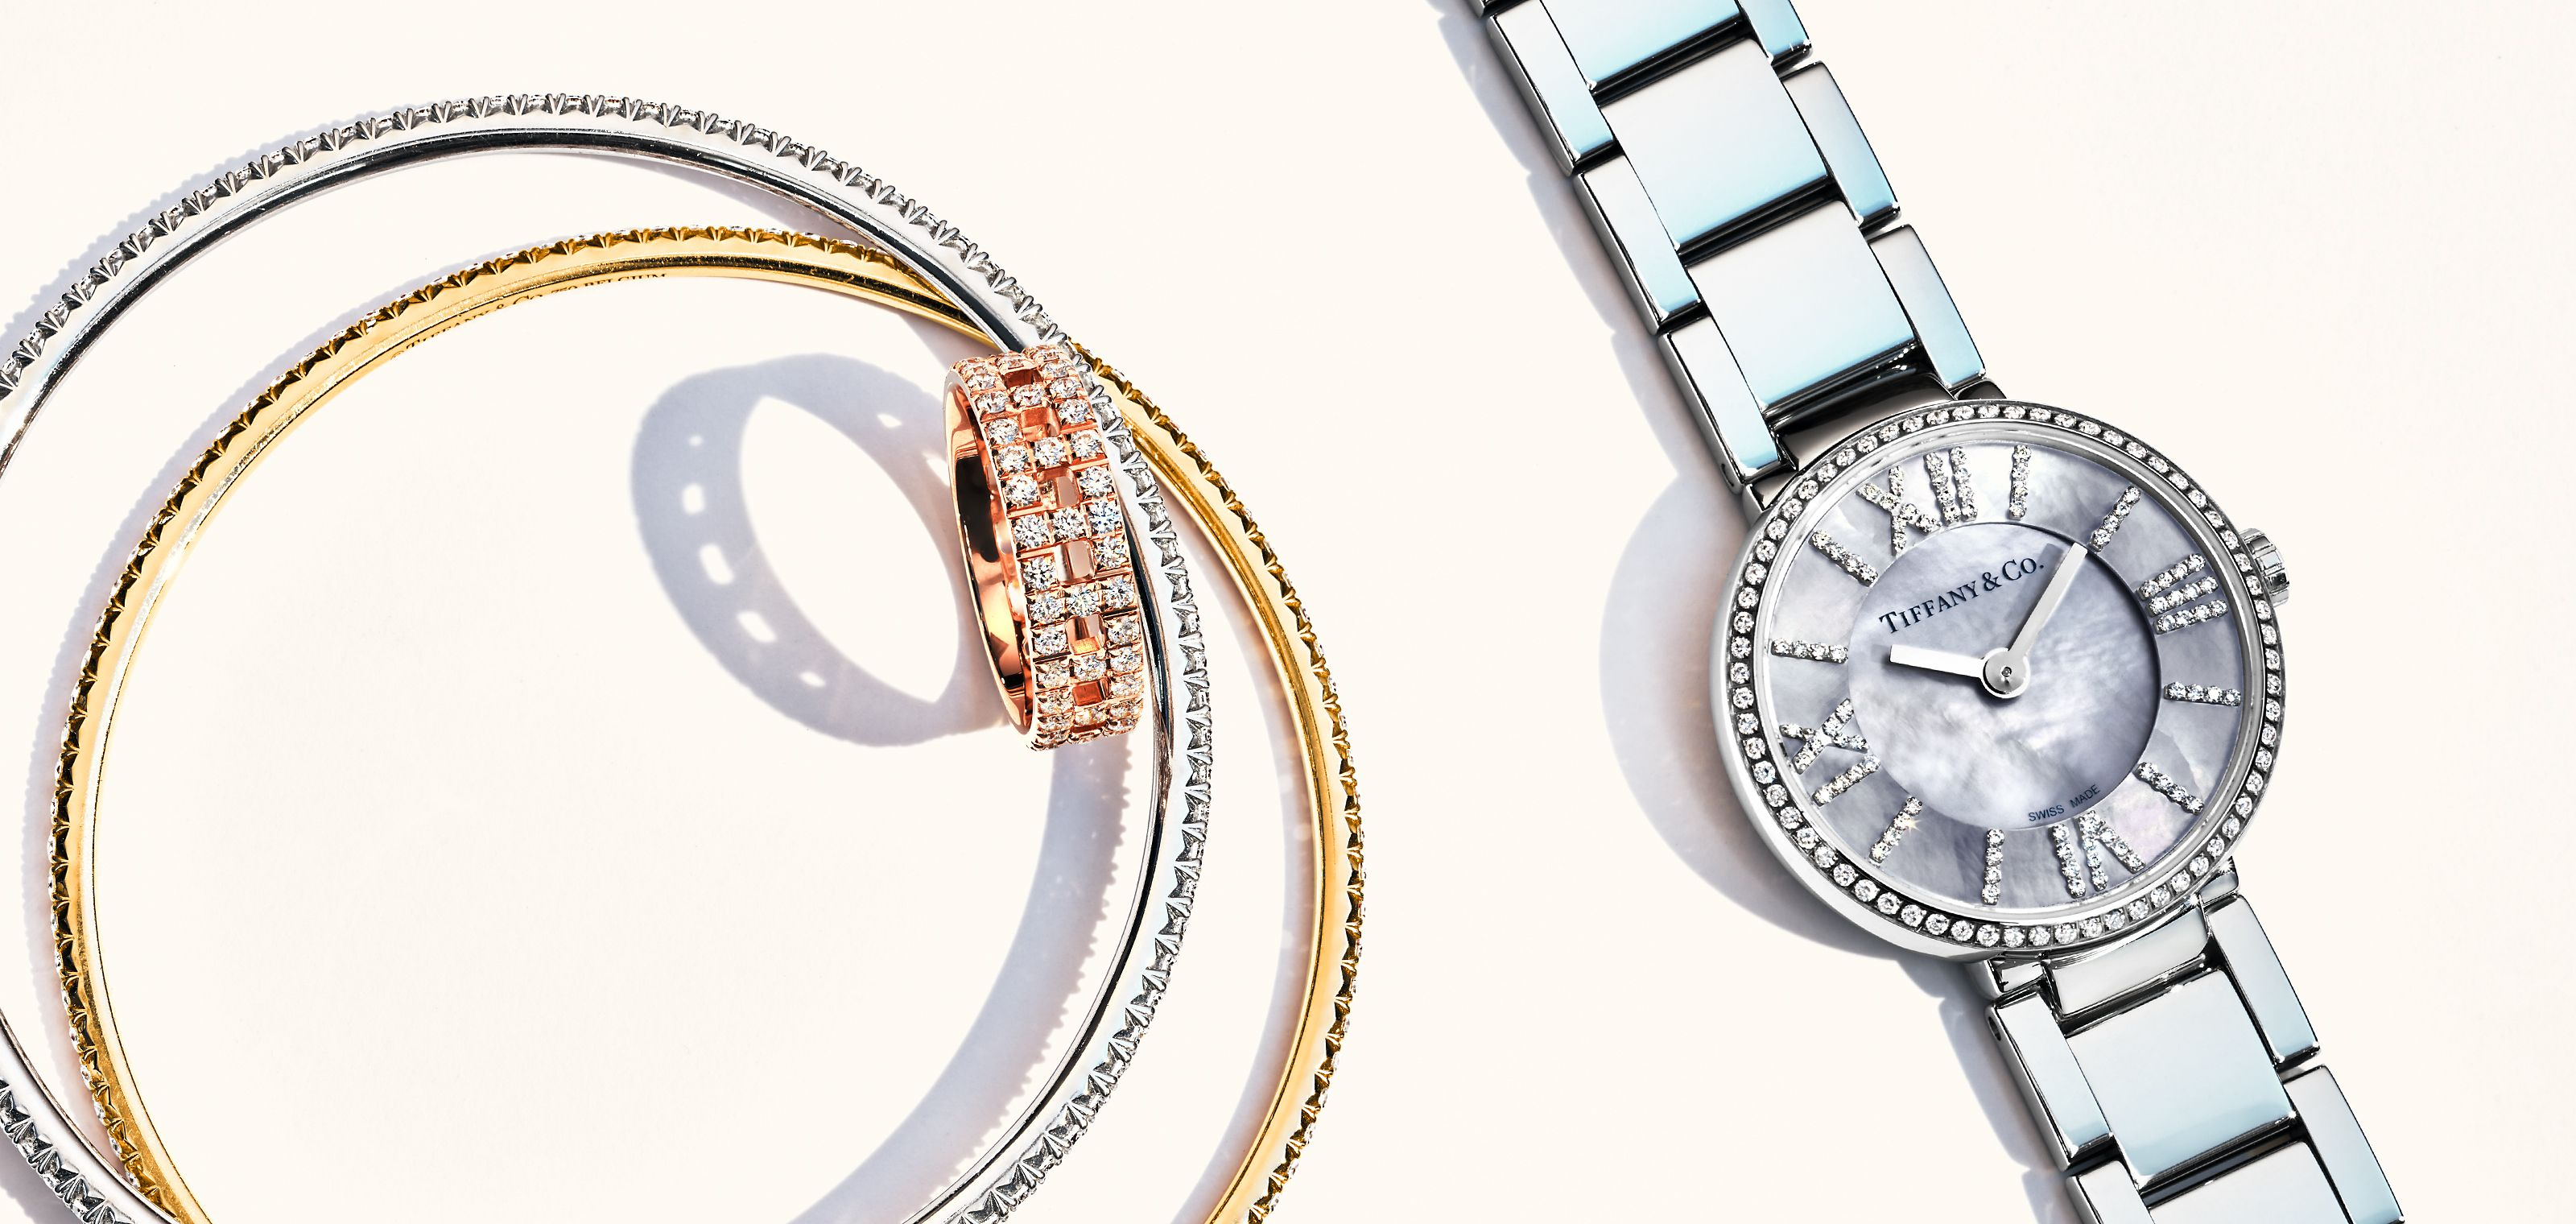 Tiffany & Co. — Atlas® Watches